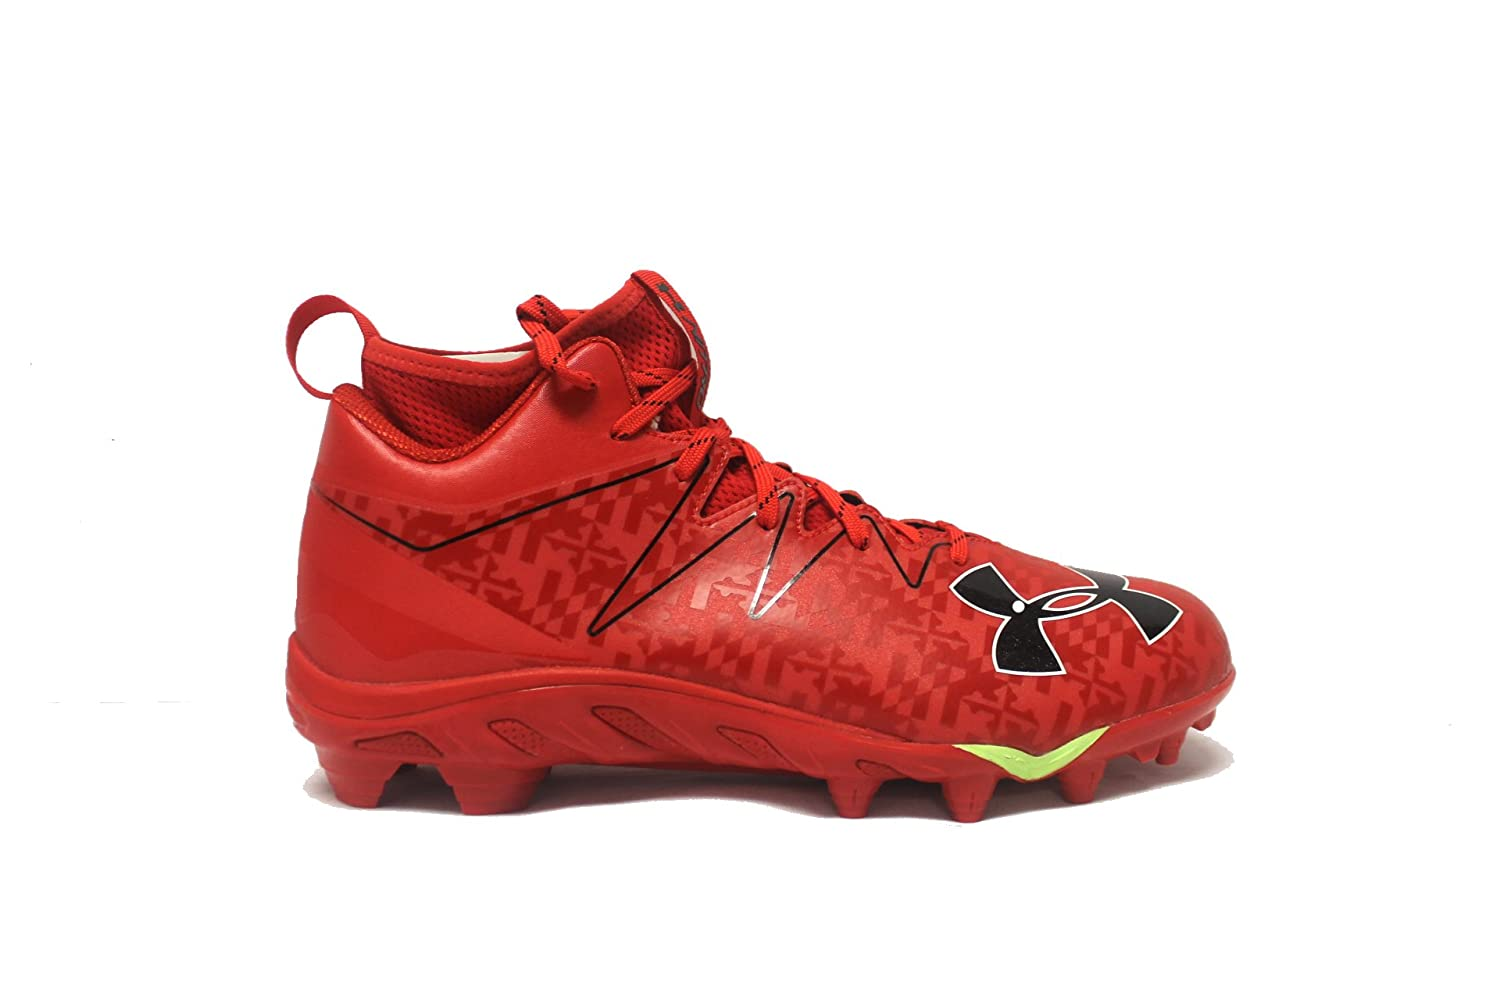 Under Armour メンズ B07DK8DP78Red/Red/Black 11.5 D(M) US